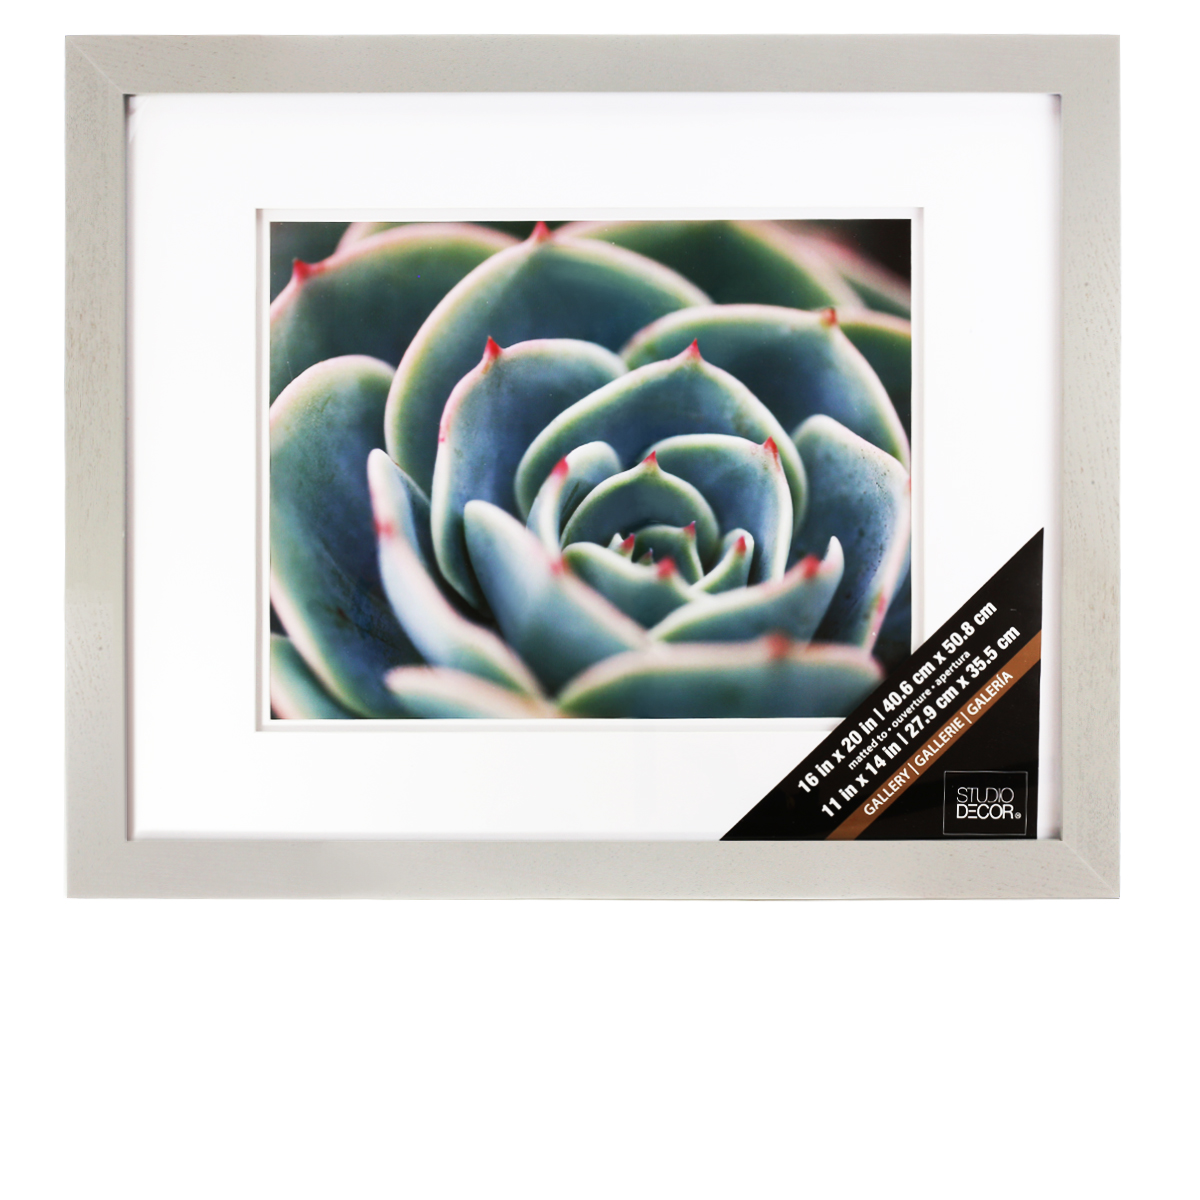 Wall Art Decor Michaels : Grey gallery wall frame with double mat by studio d?cor?